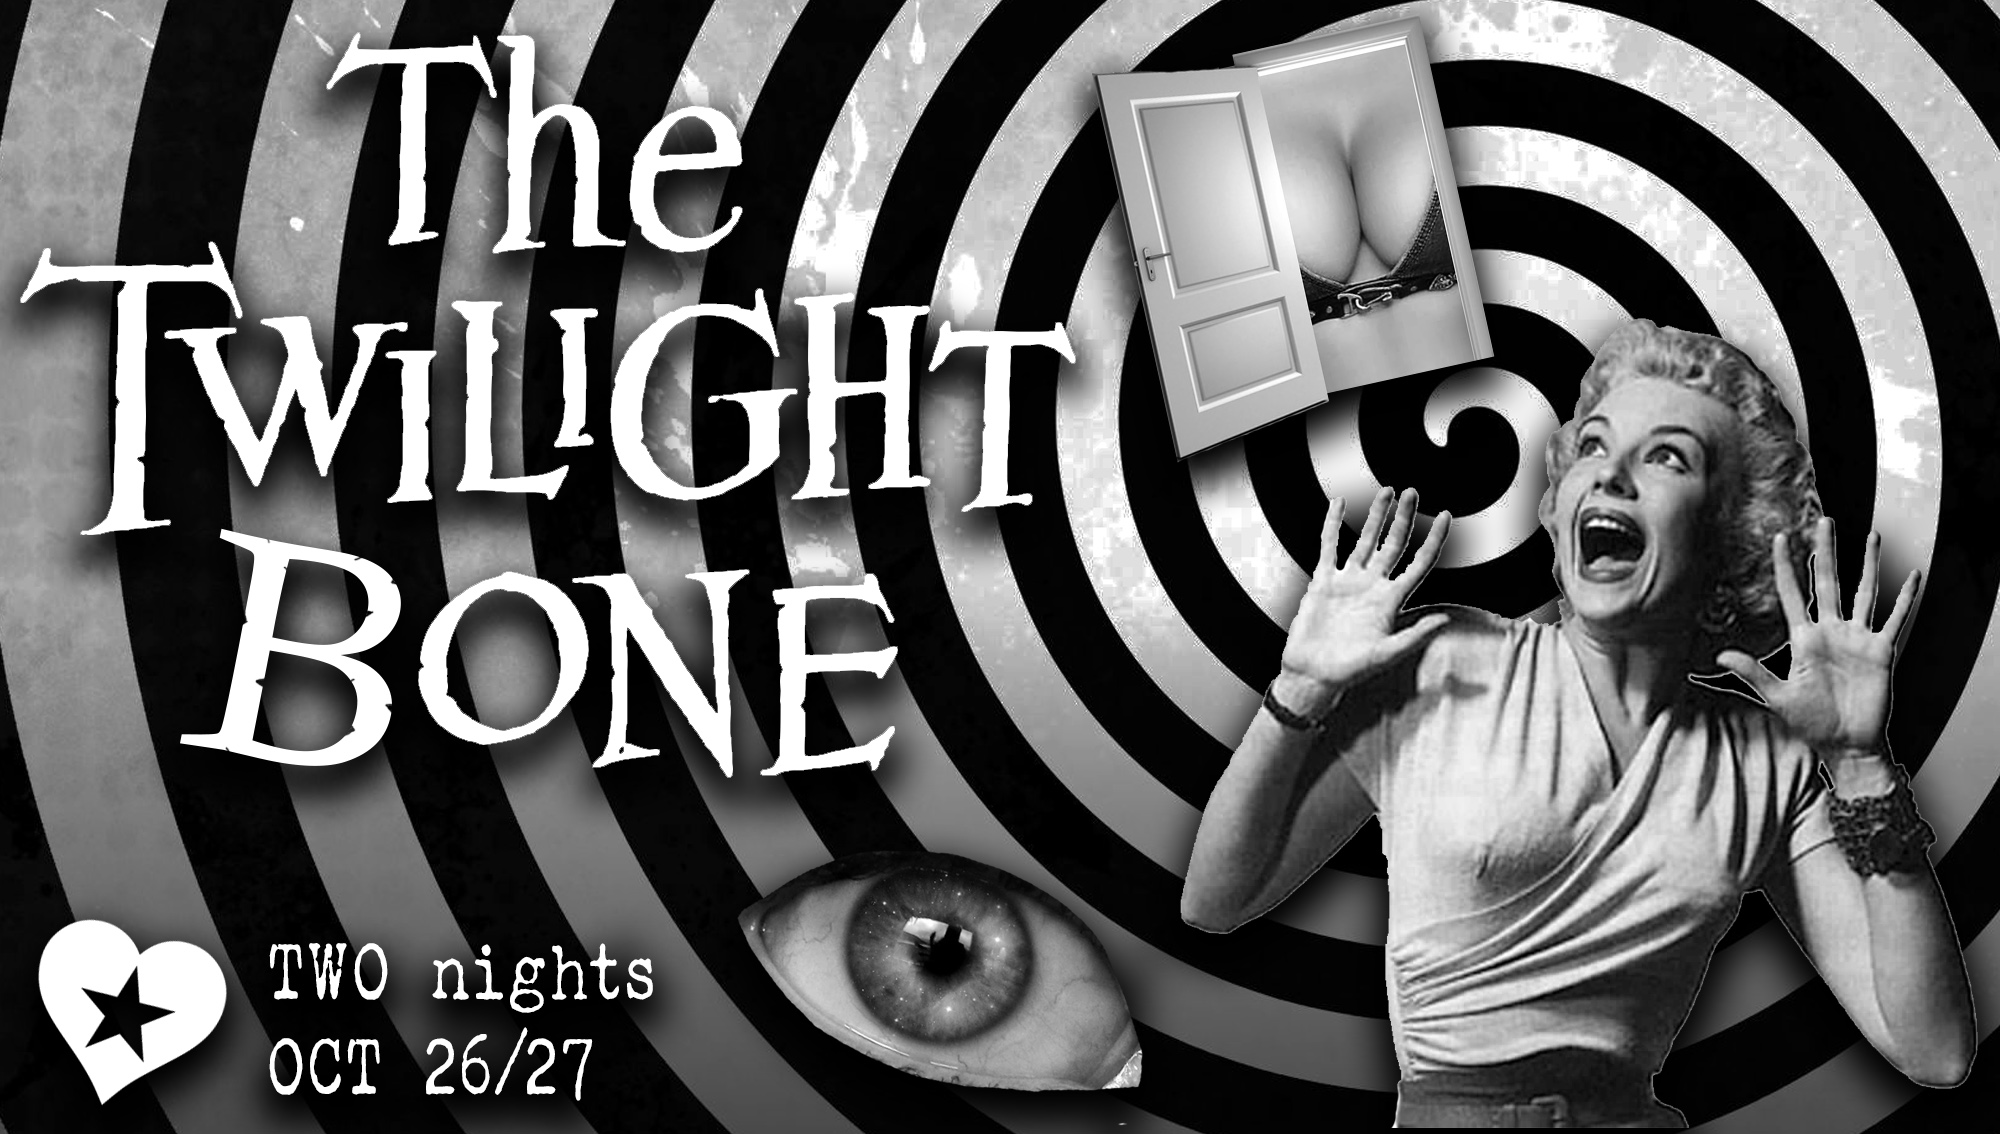 Kinky Salon TWILIGHT BONE - OCT 26 + 27